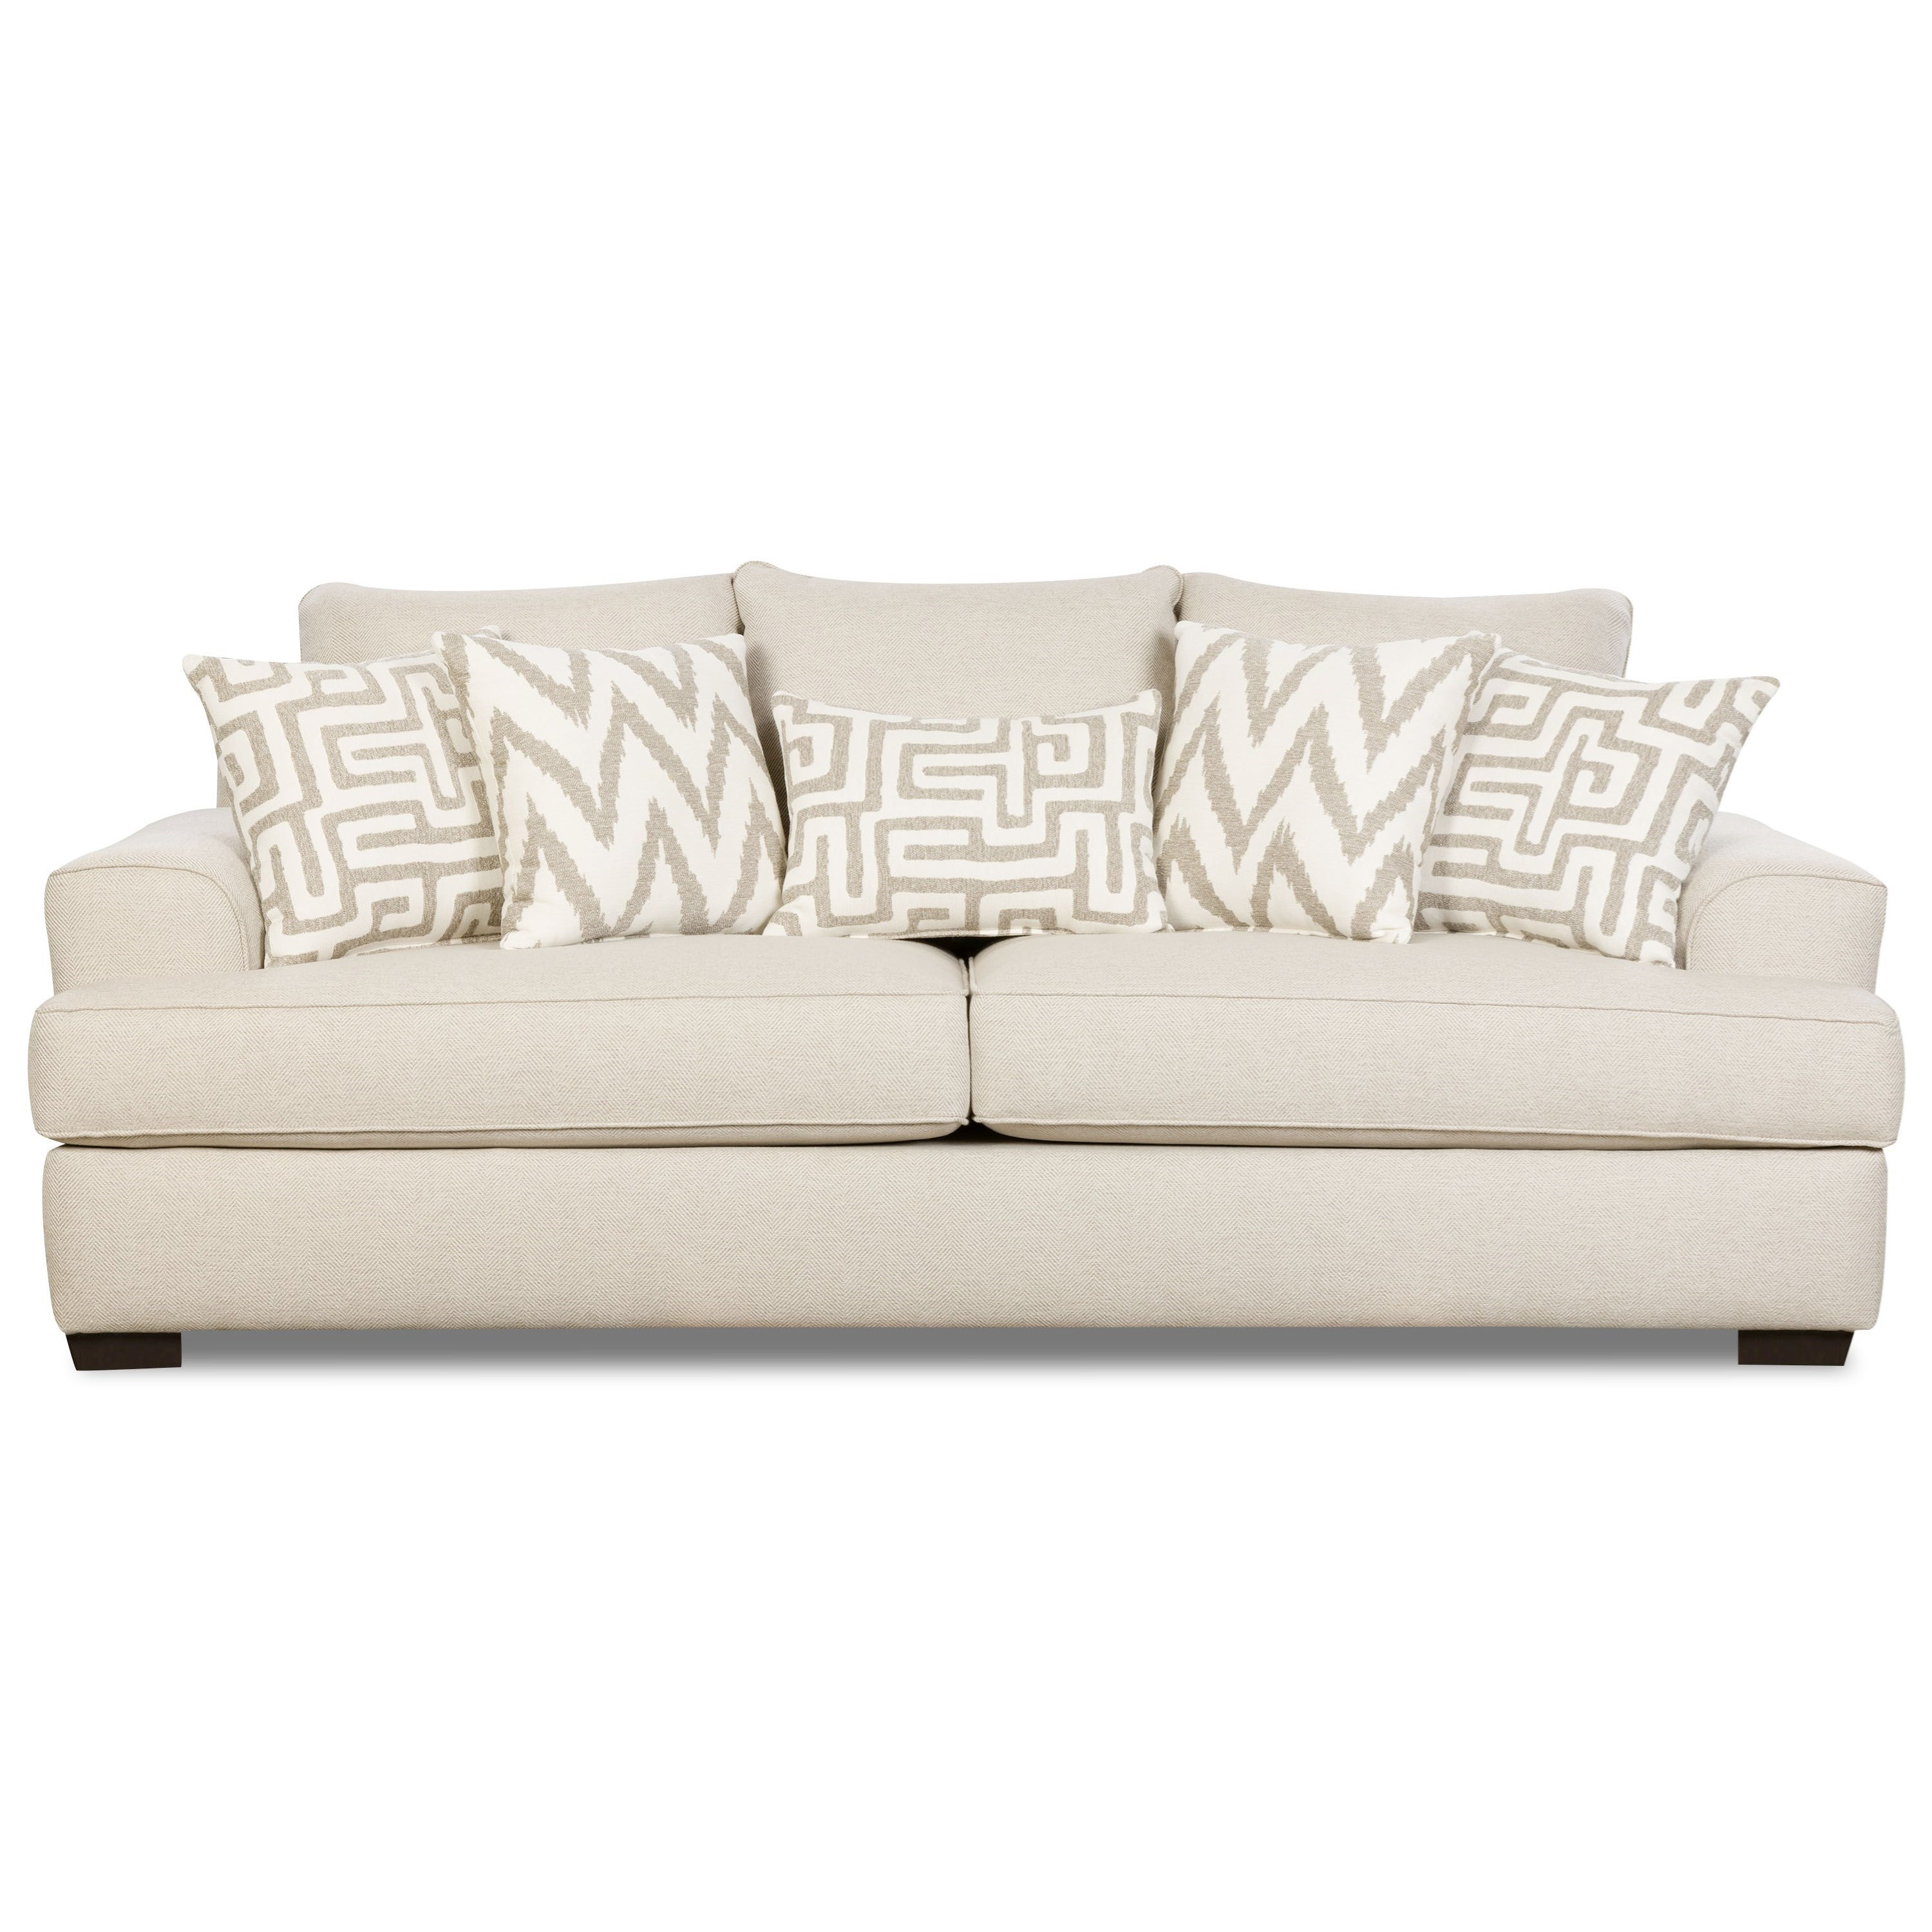 32B0 Sofa by Corinthian at Story & Lee Furniture